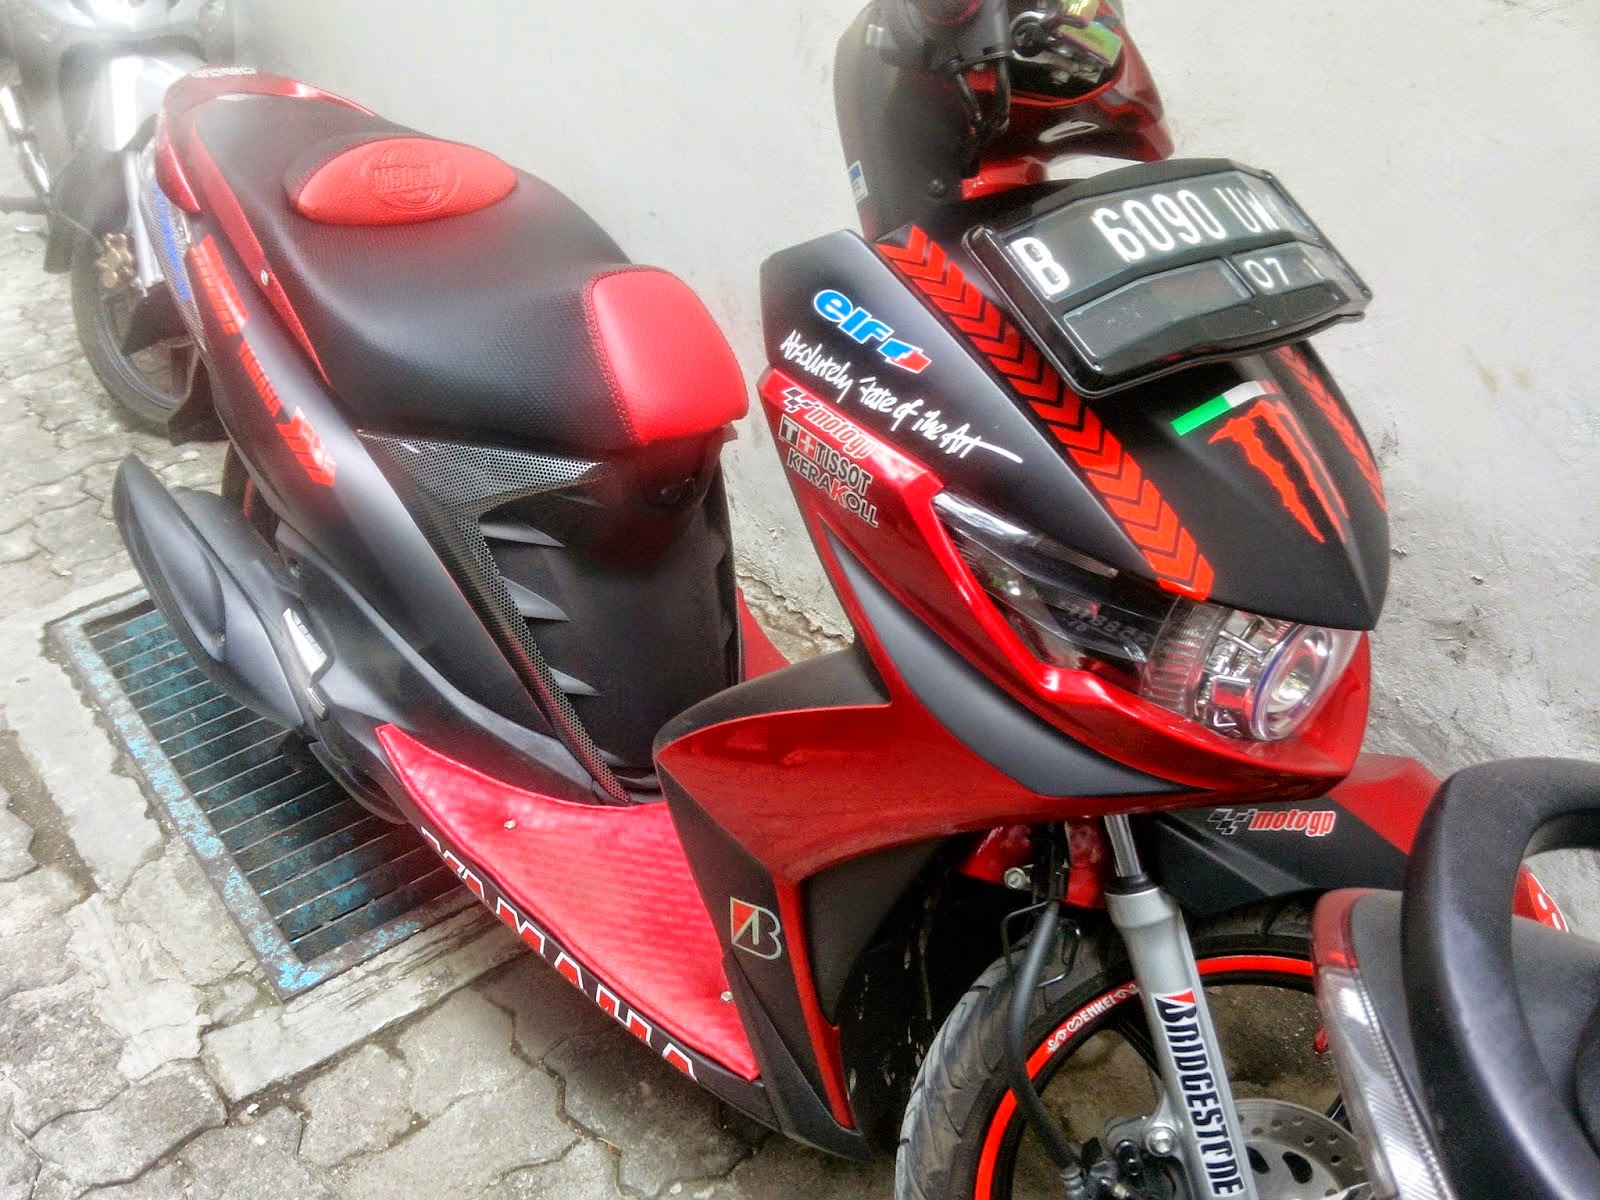 Aneka Modifikasi: Modifikasi Motor Mio Soul Gt Warna Putih